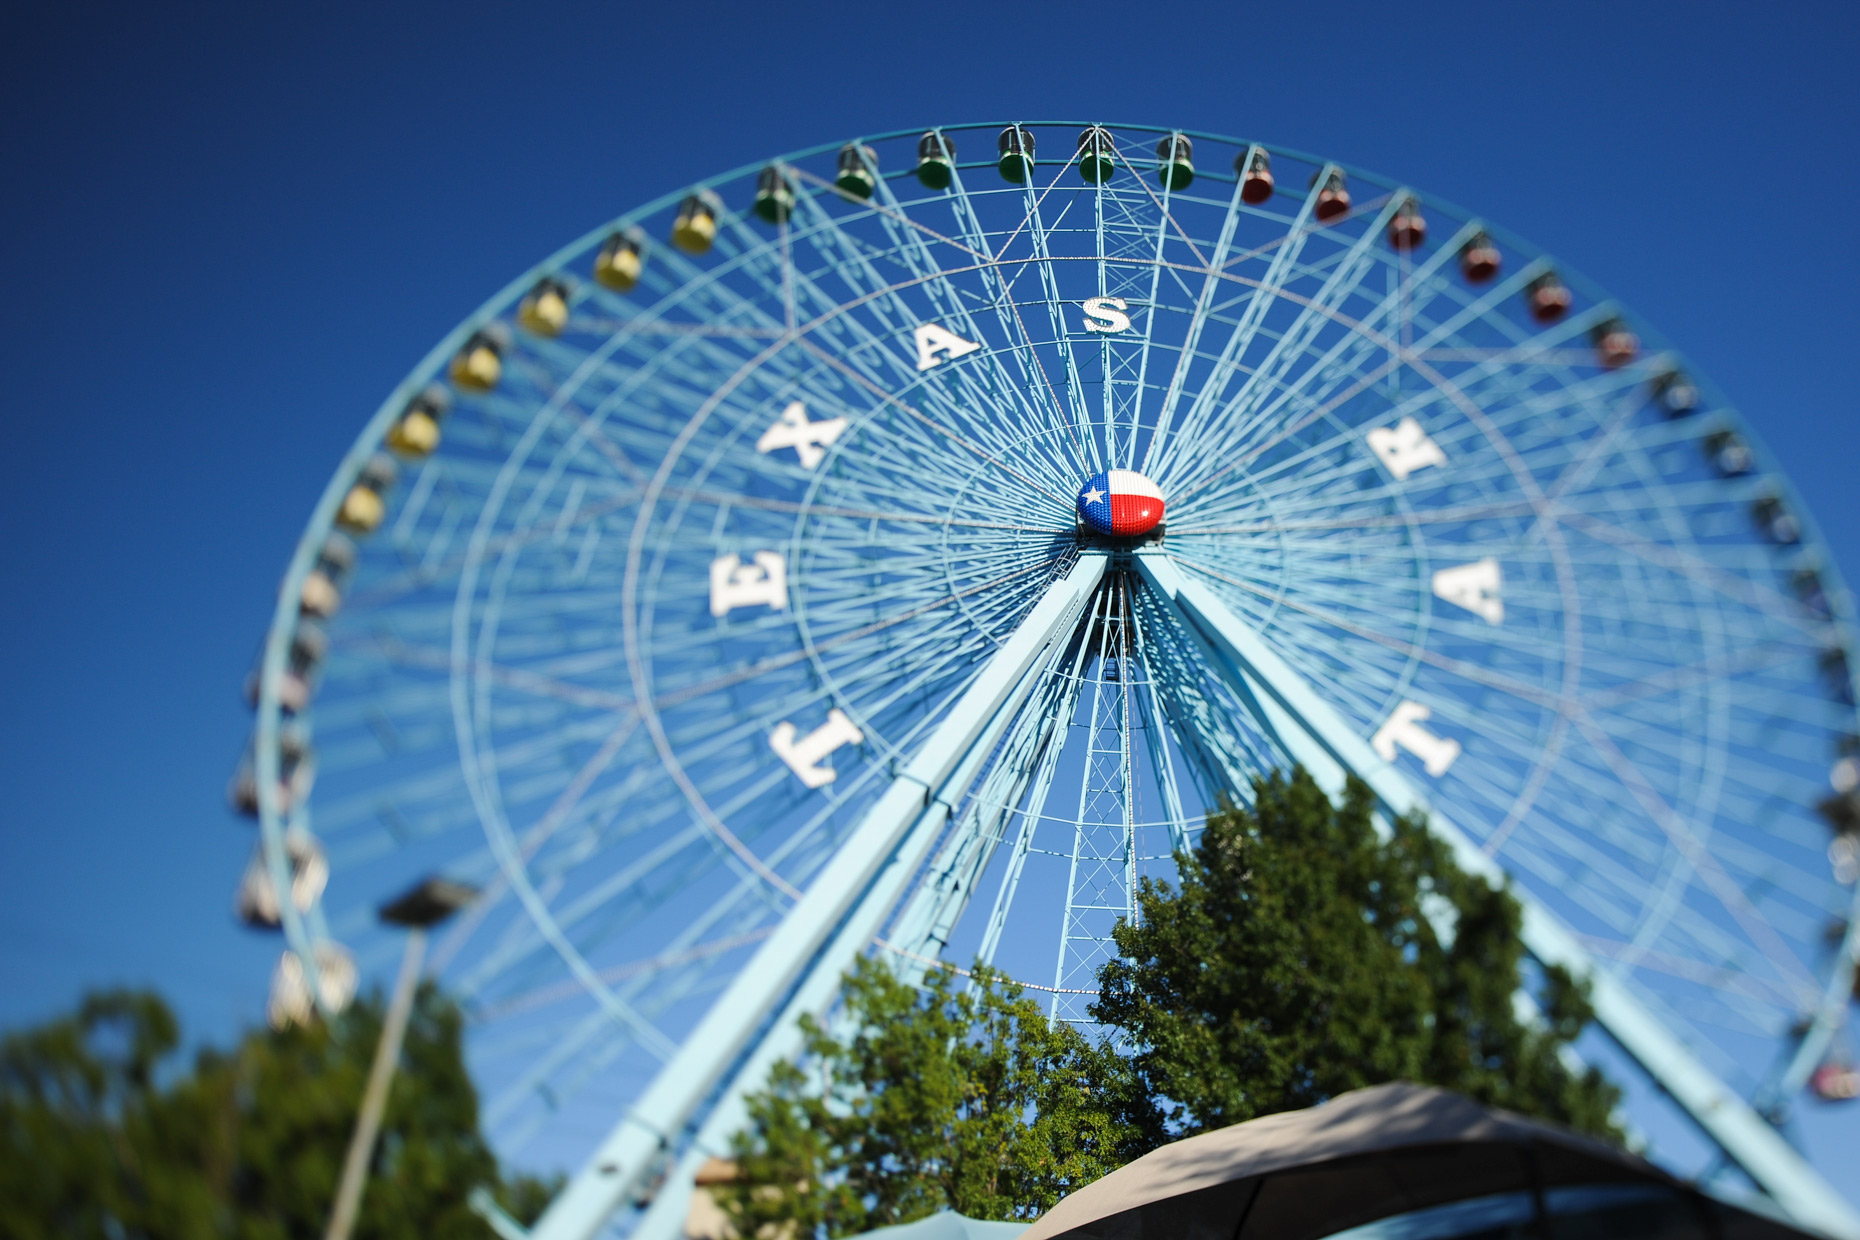 The Texas Star Ferris Wheel at The State Fair of Texas. Photography by Kevin Brown